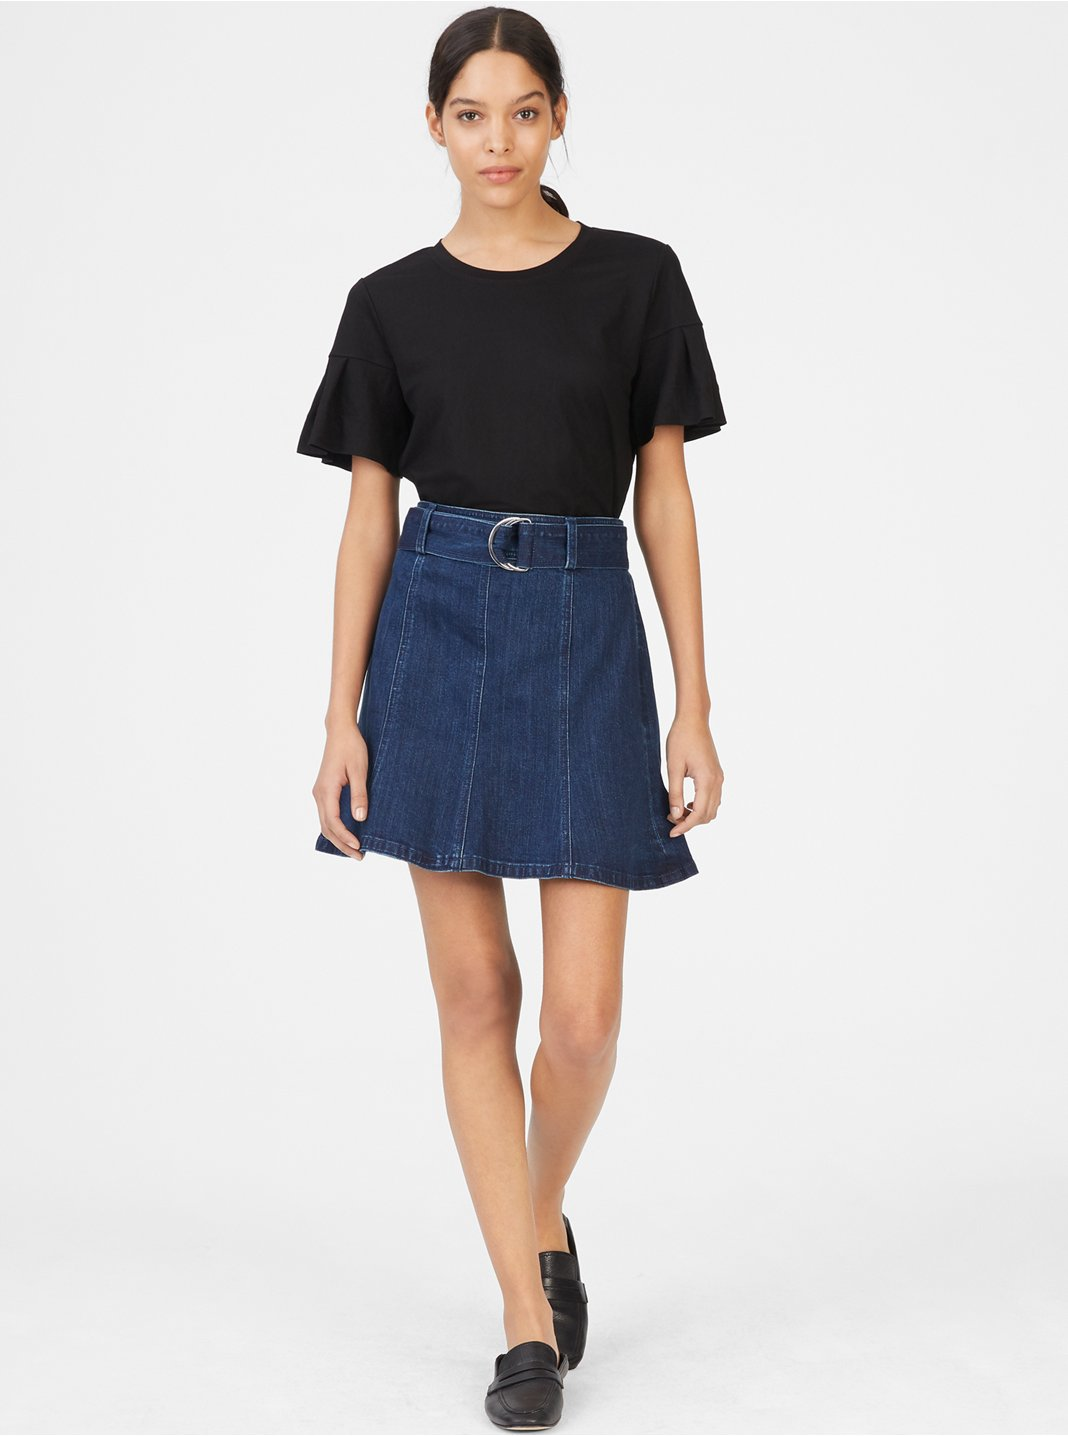 Louiza Denim Skirt